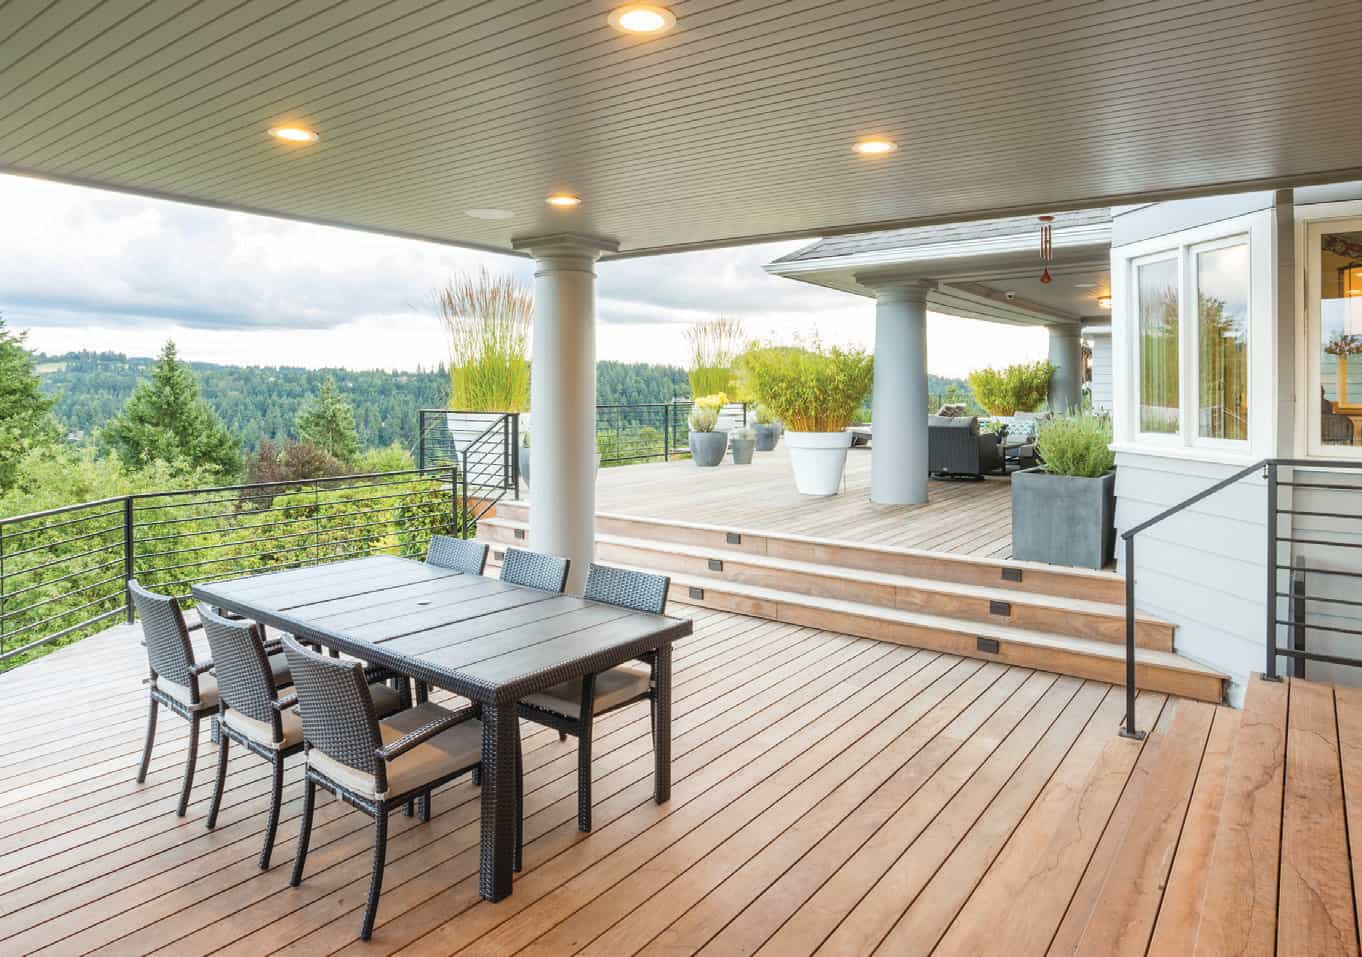 The skyline is unimpeded by the open railing on the ipe wood deck.